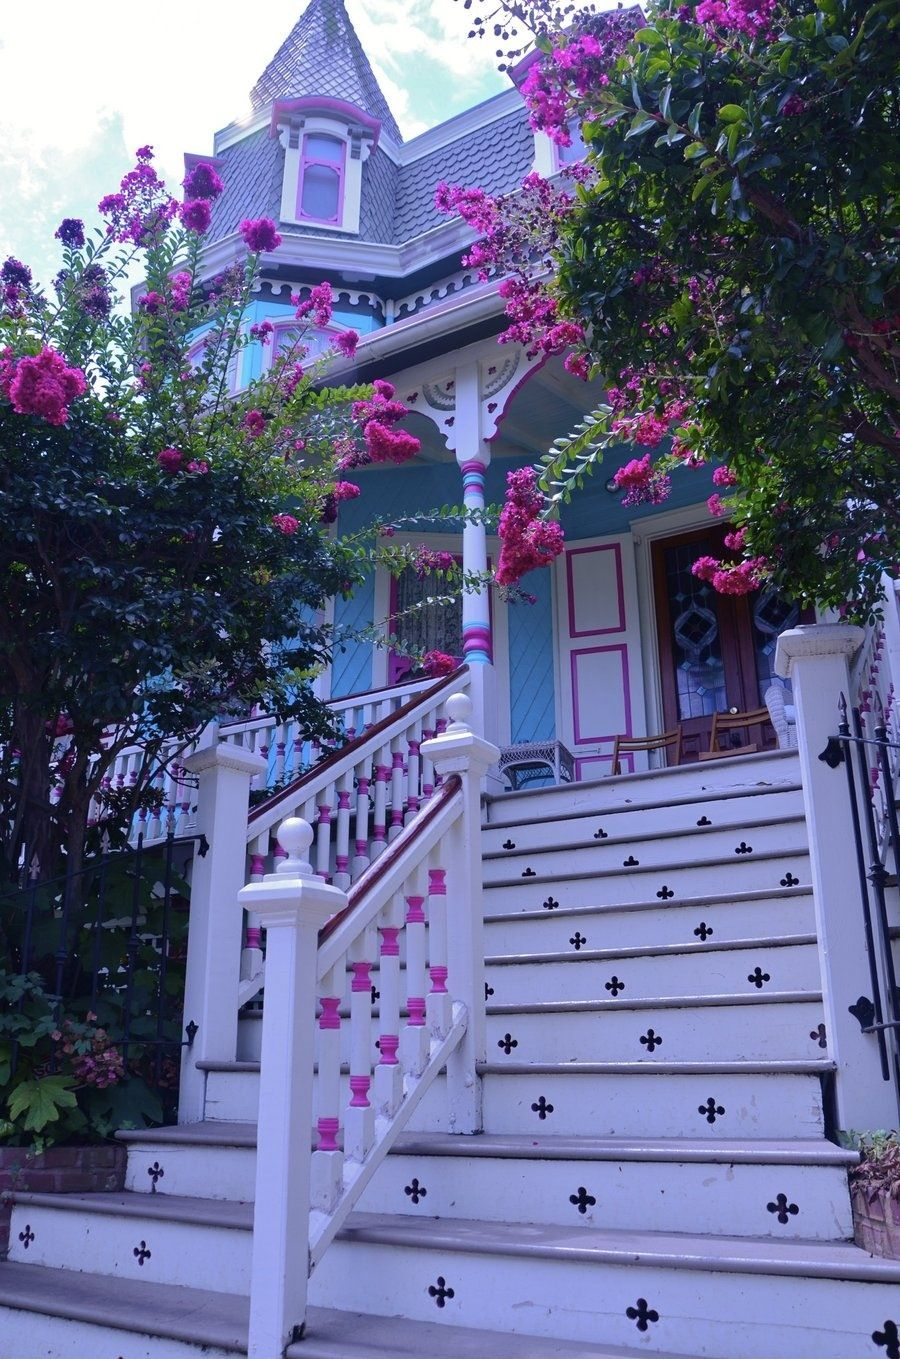 victorian painted lady porch - photo #37